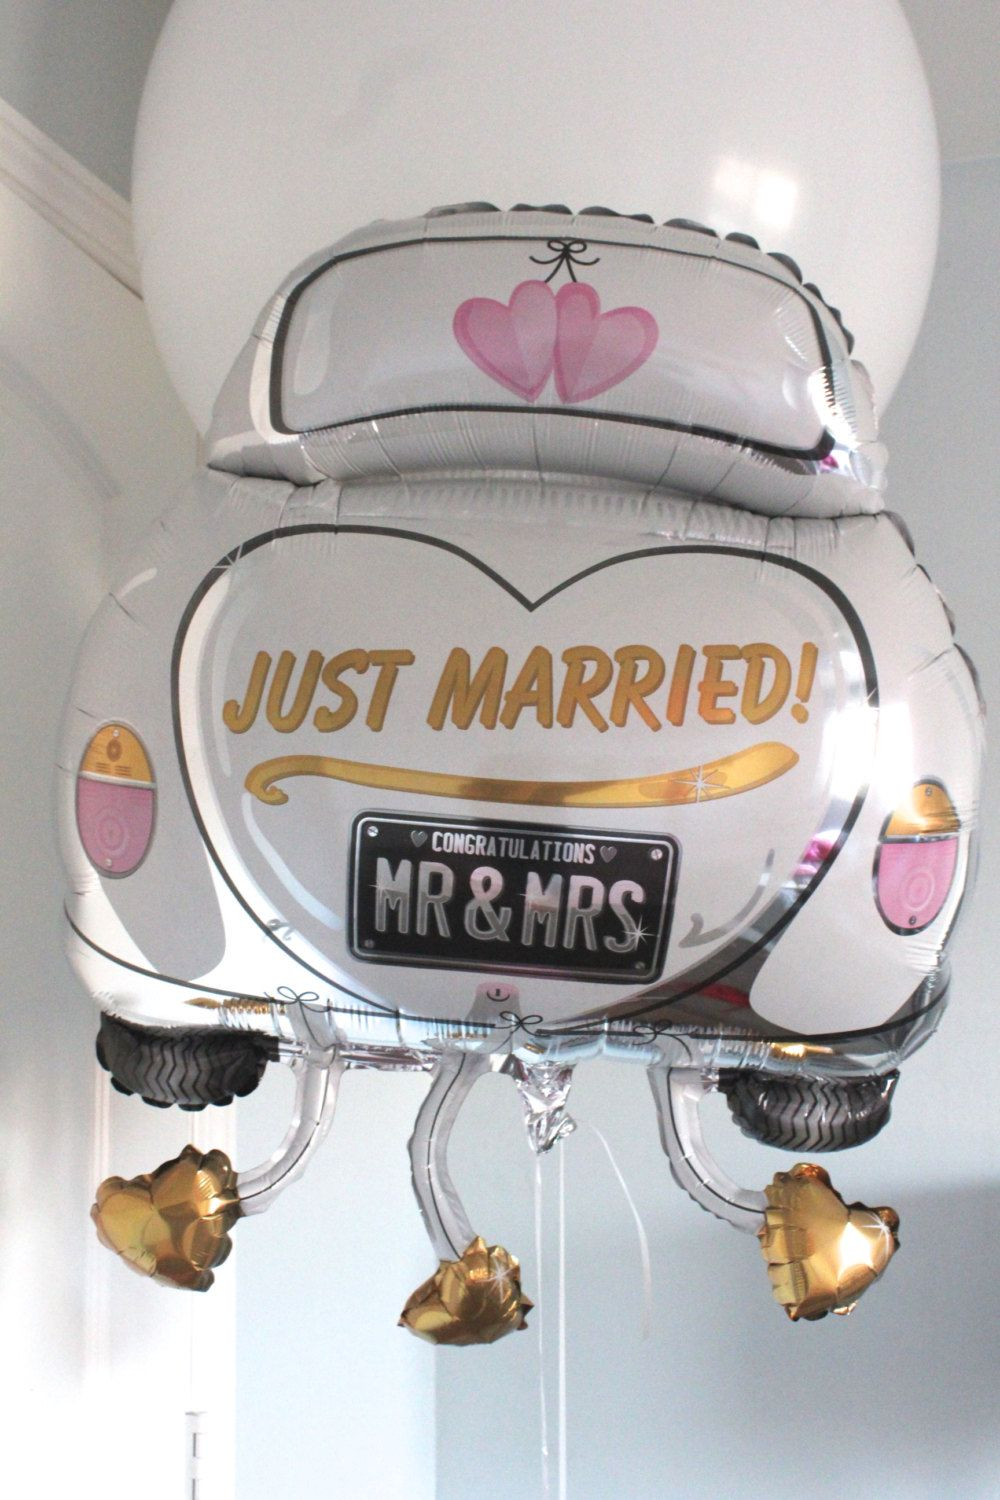 Just Married Balloon Wedding Newly Celebration By Loveprettydetails On Etsy